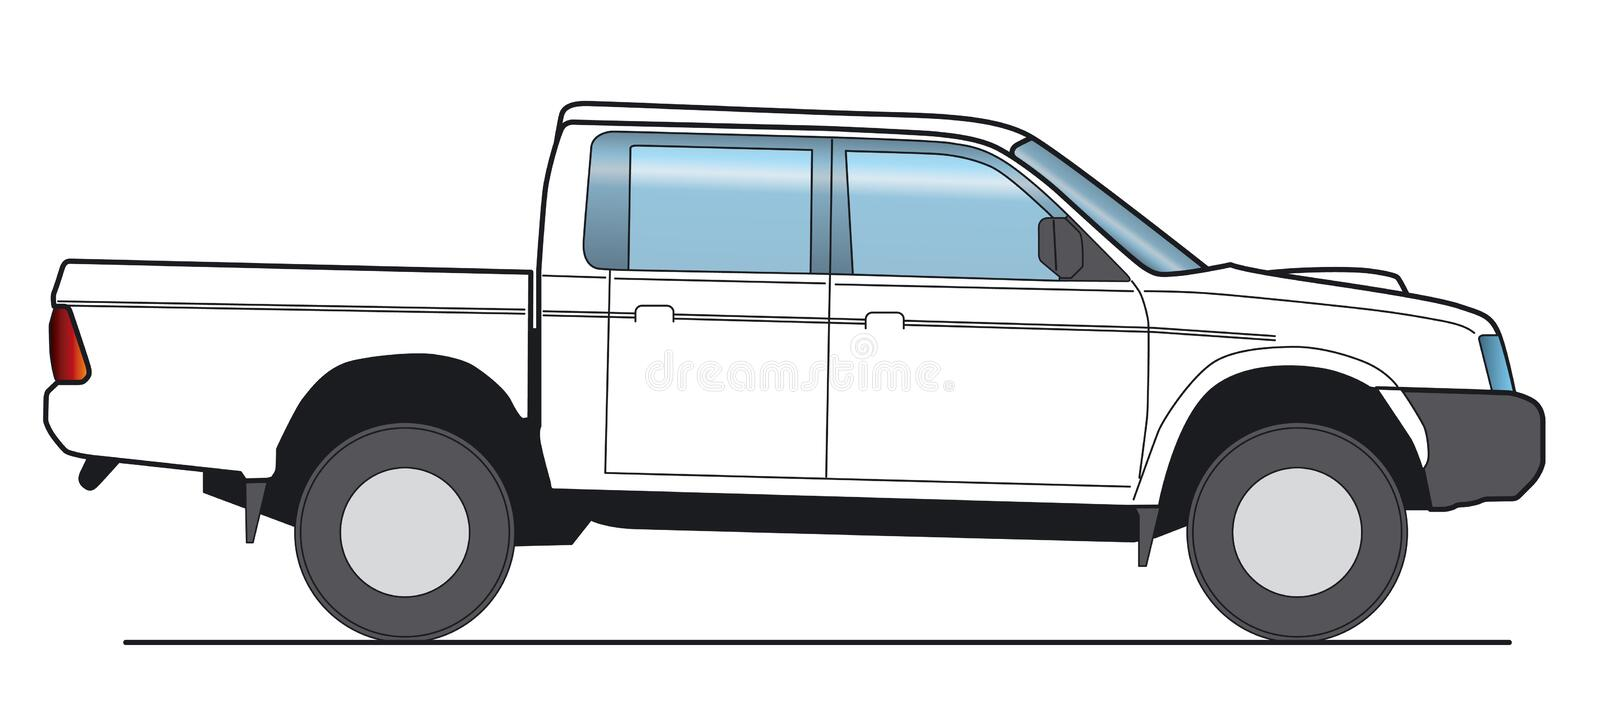 Pickup vector illustration